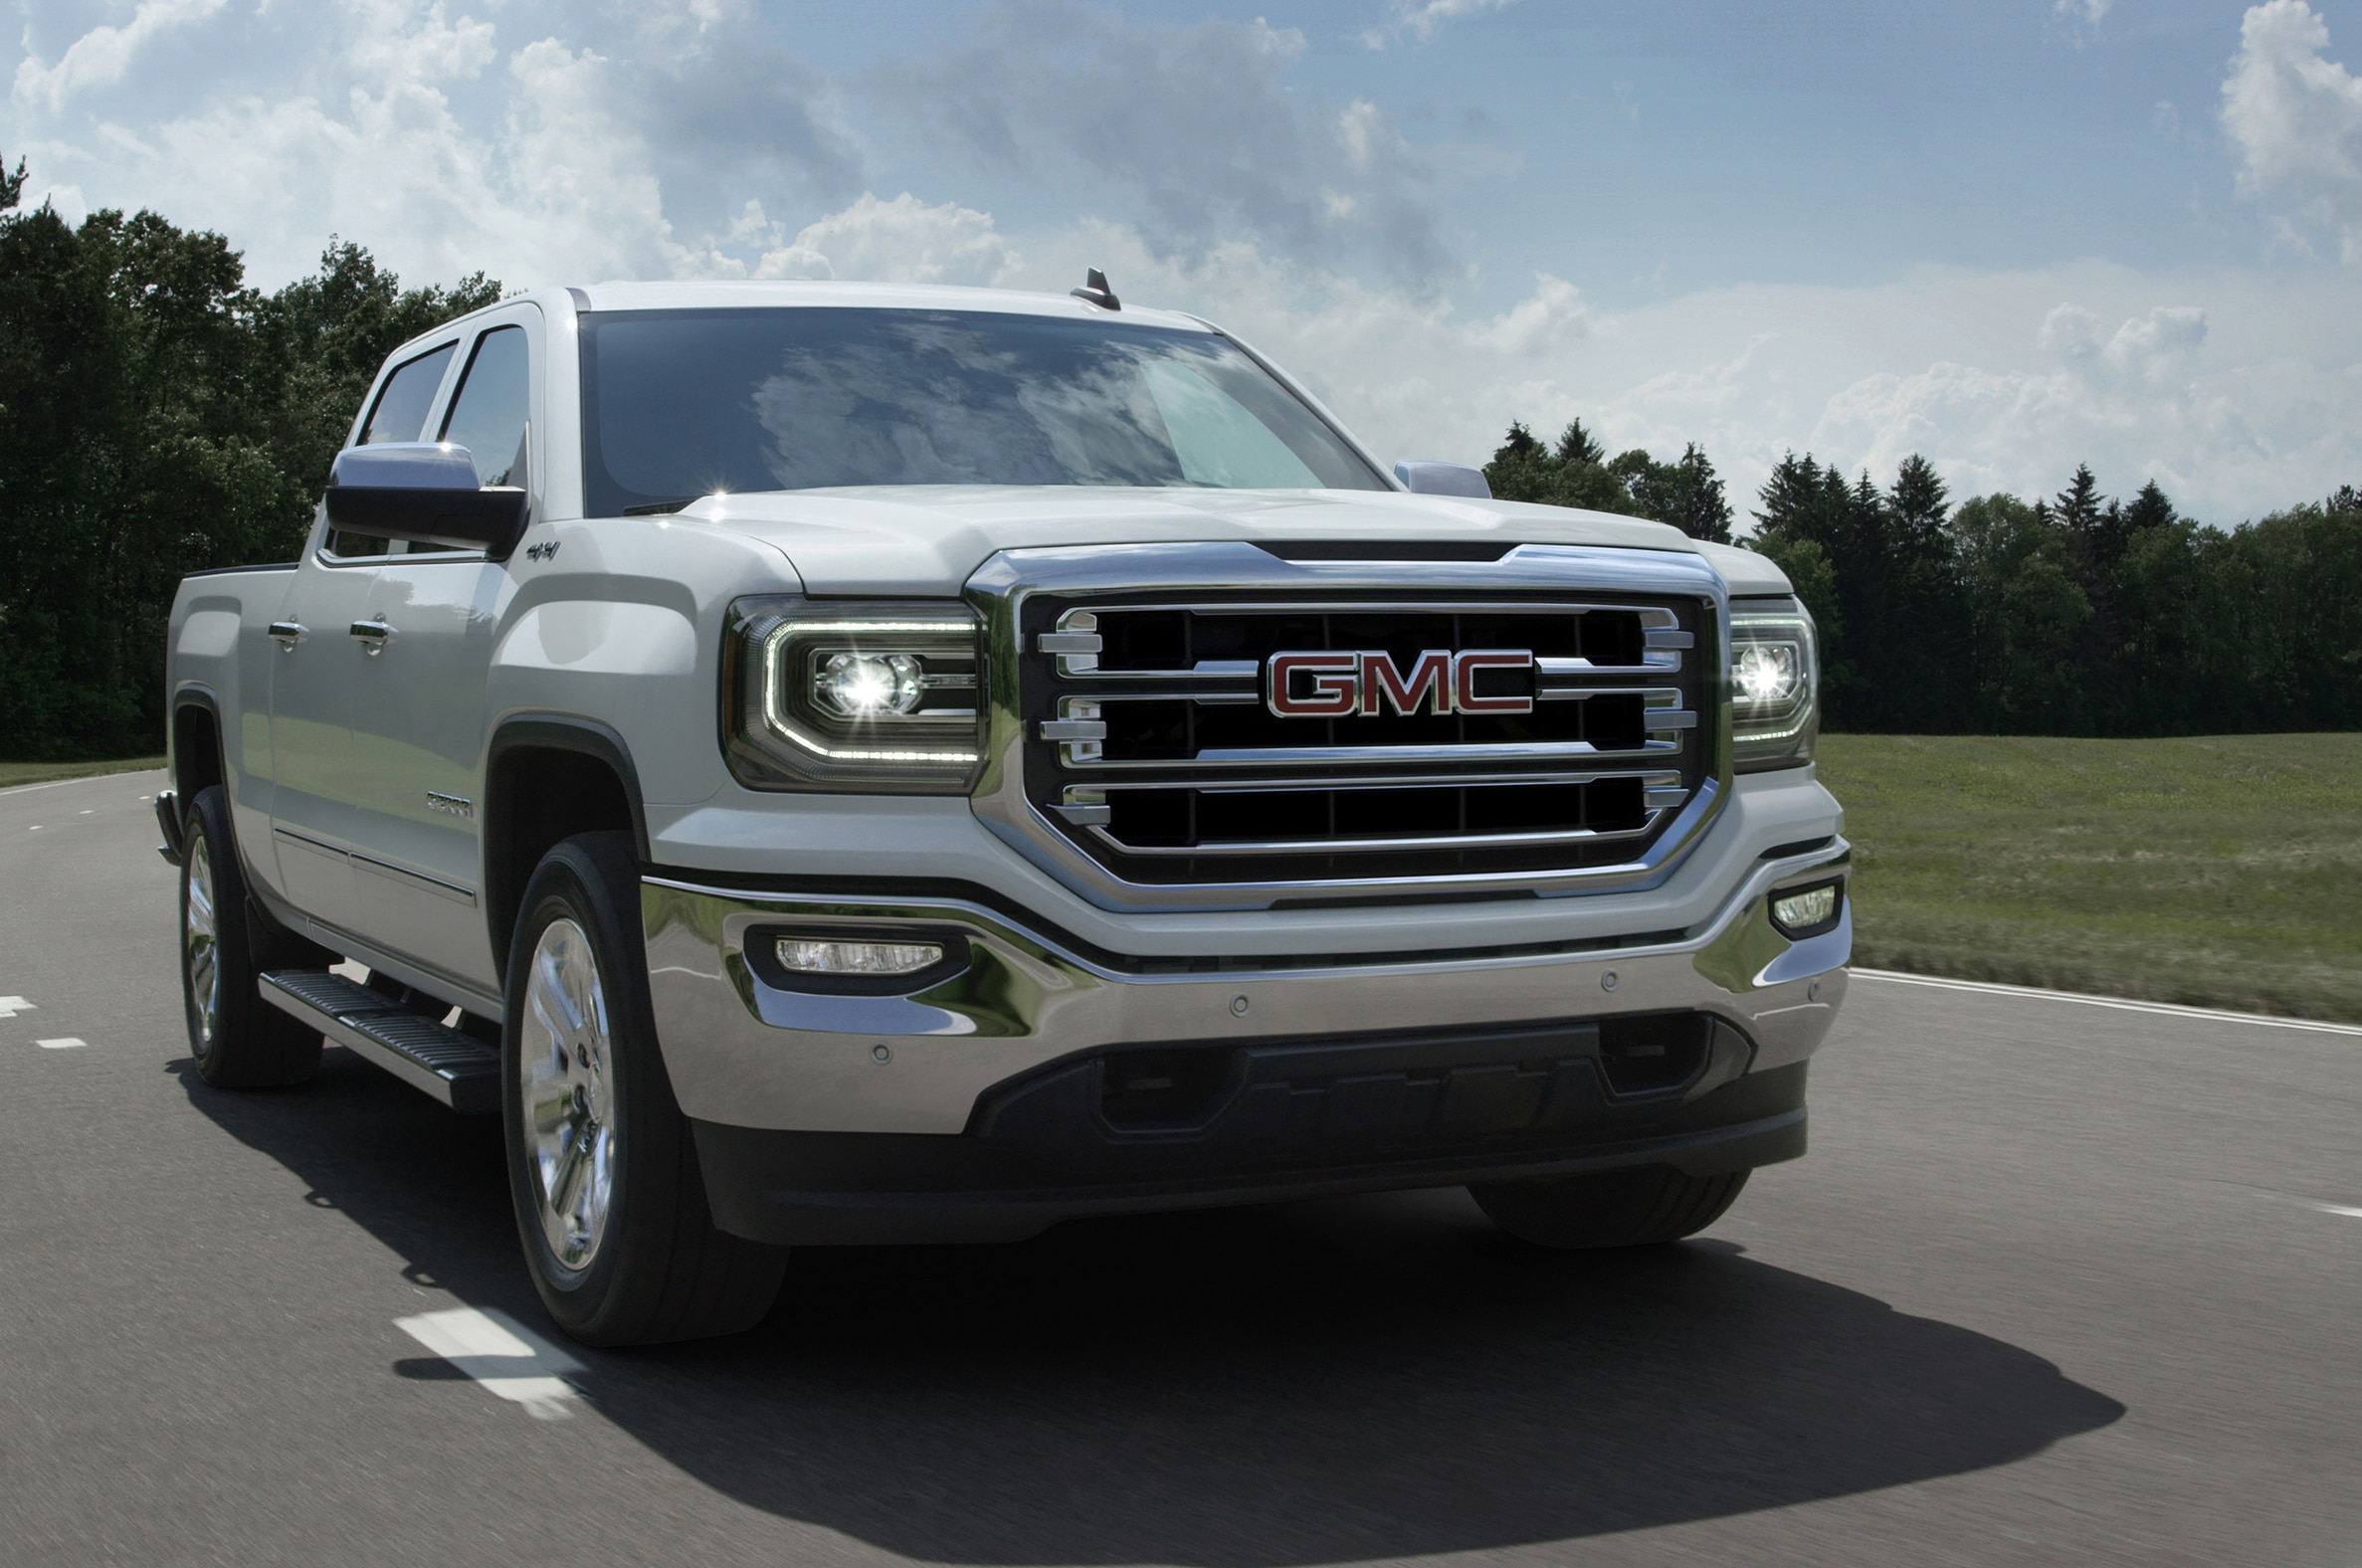 Updated 2016 GMC Sierra Elevation Edition Revealed in Texas